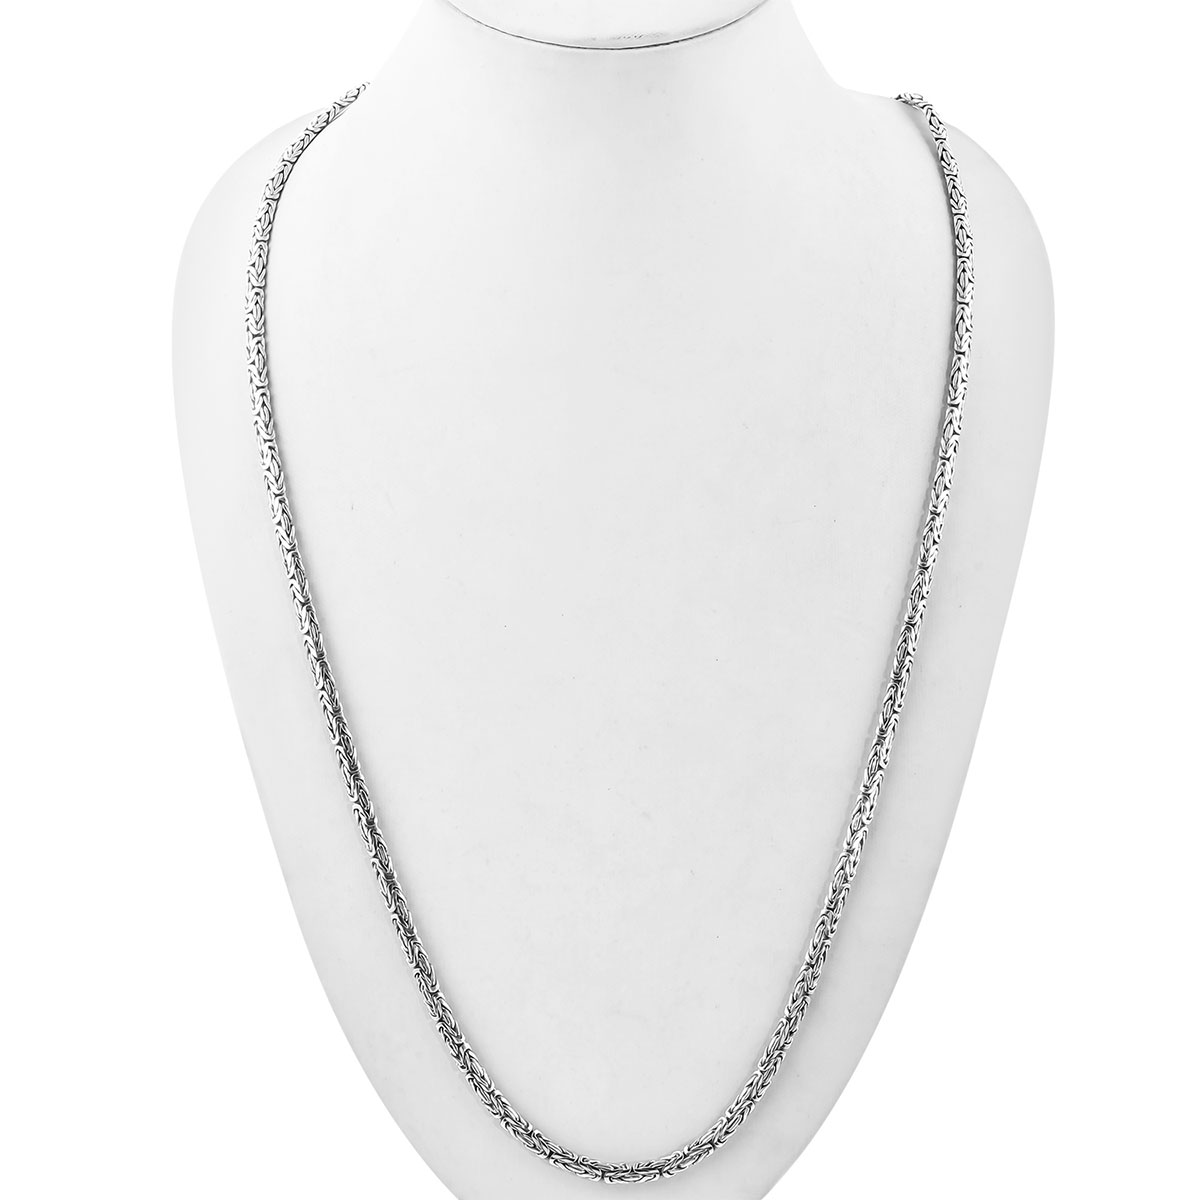 BALI LEGACY Sterling Silver Borobudur Necklace (30 in, 48.2 g)